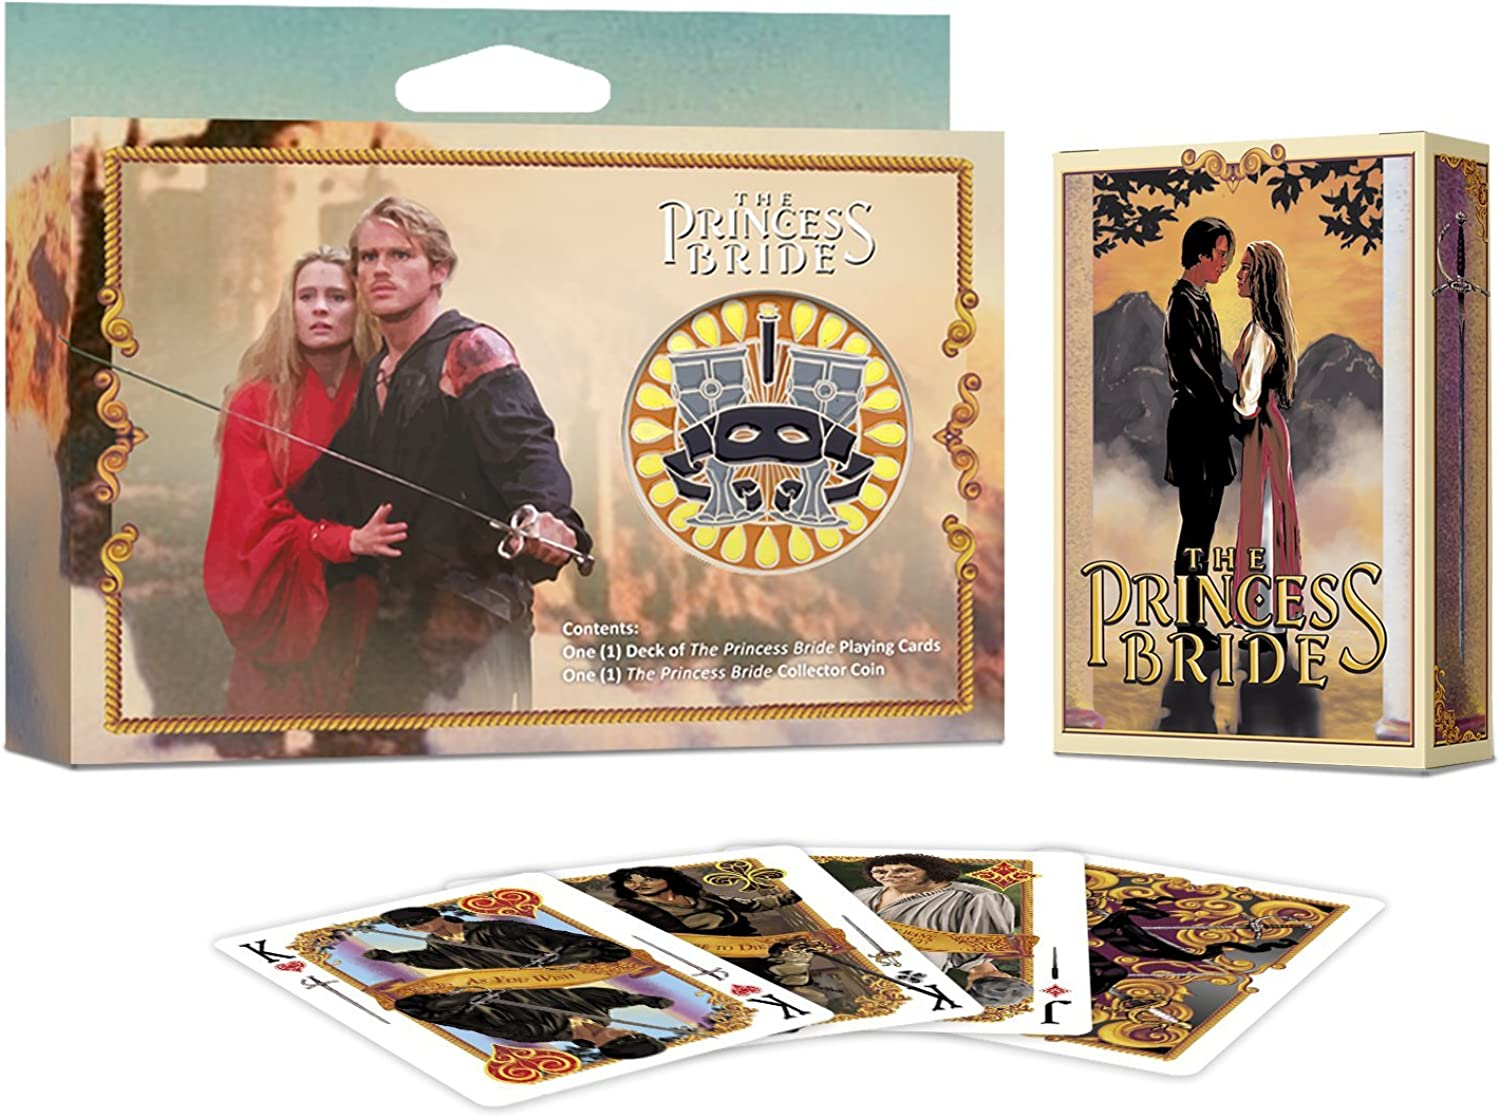 The Princess Bride Gift Set